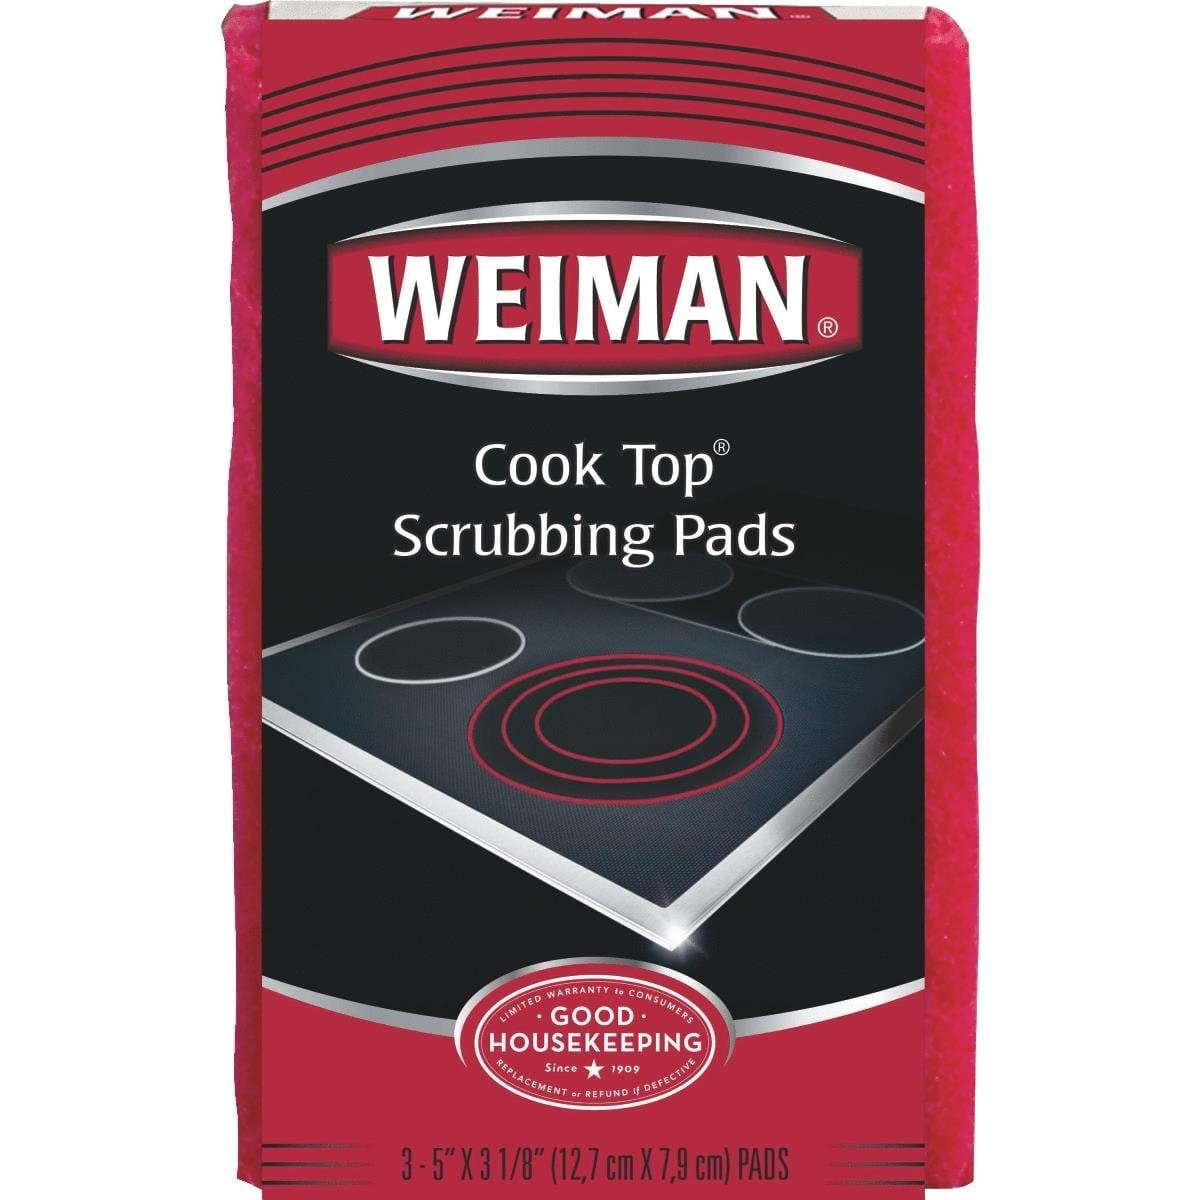 3-Count Weiman Cook Top Non-Scratch Scrubbing Pads $1.49 + Free Shipping w/ Prime